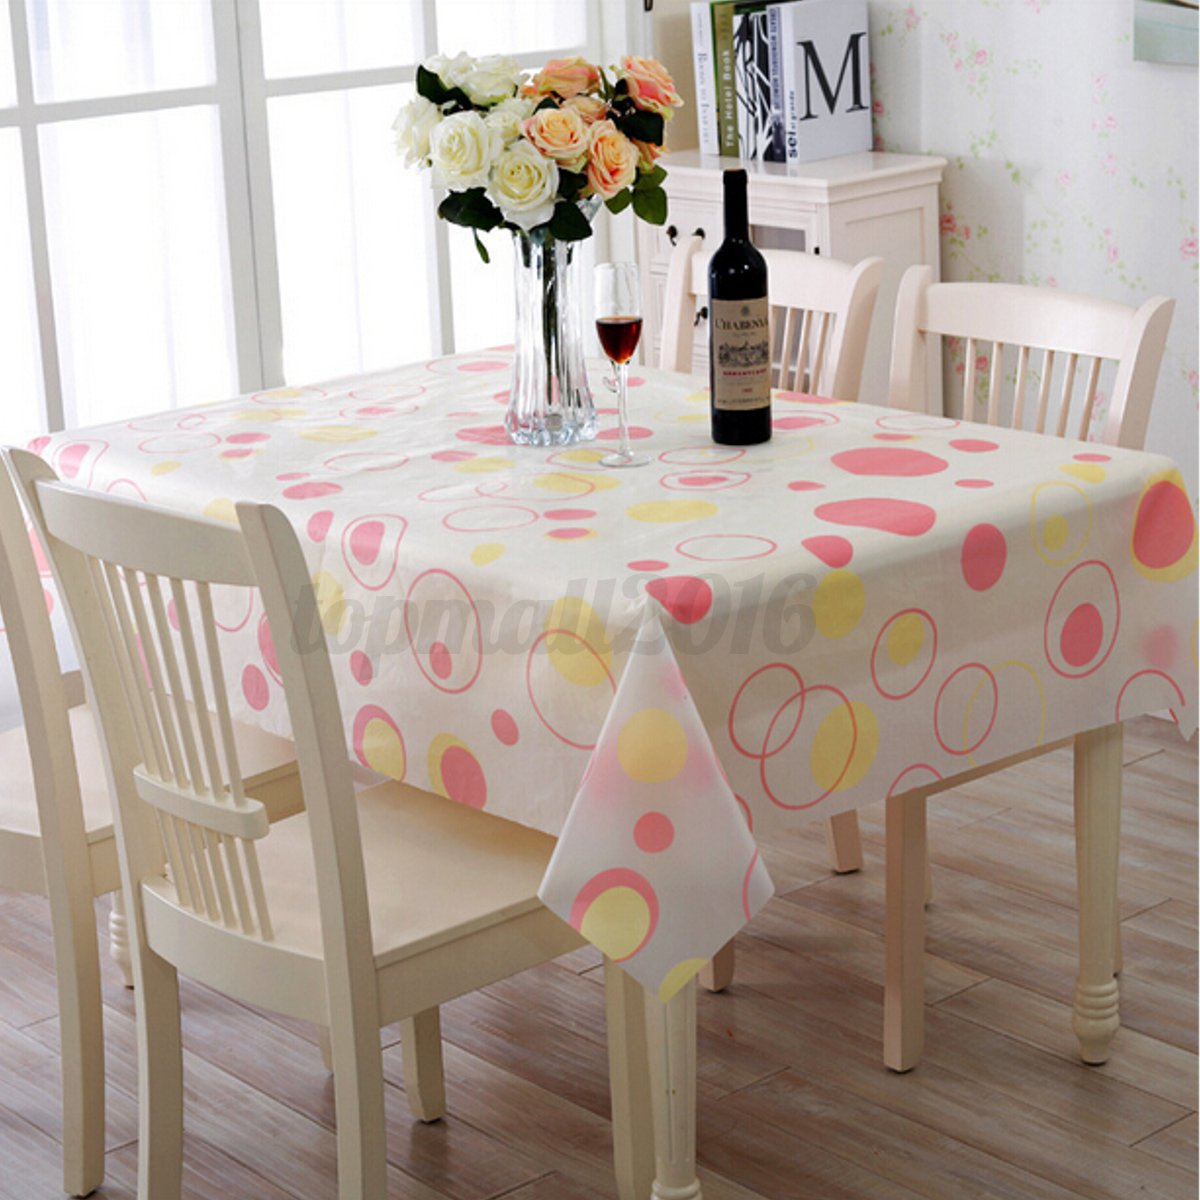 wipe clean pvc vinyl tablecloth dining kitchen table cover